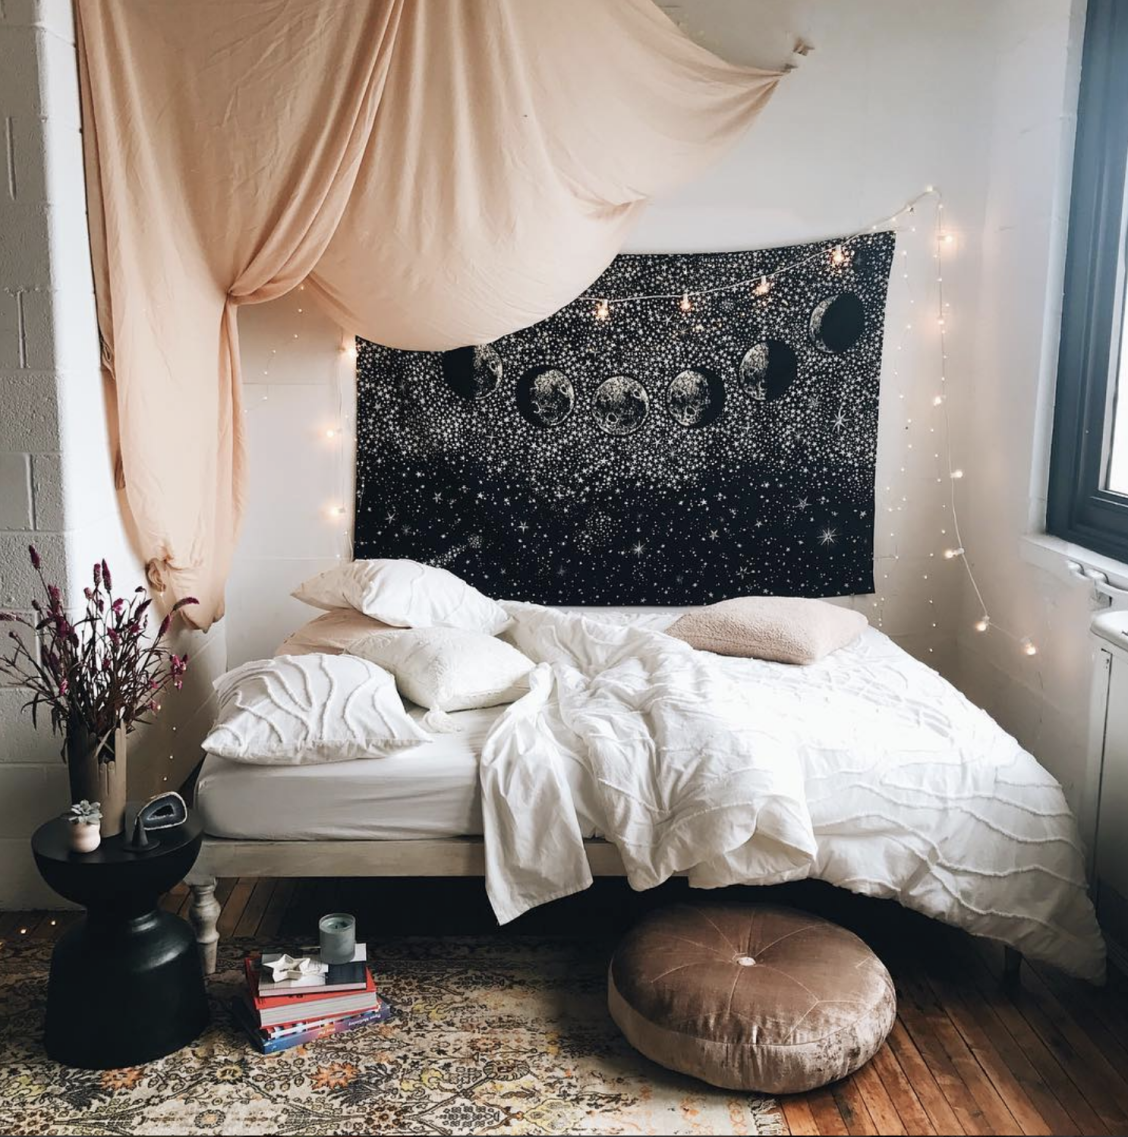 Shop Stardust Glow In The Dark Tapestry At Urban Outfitters Today. We Carry  All The Latest Styles, Colors And Brands For You To Choose From Right Here.